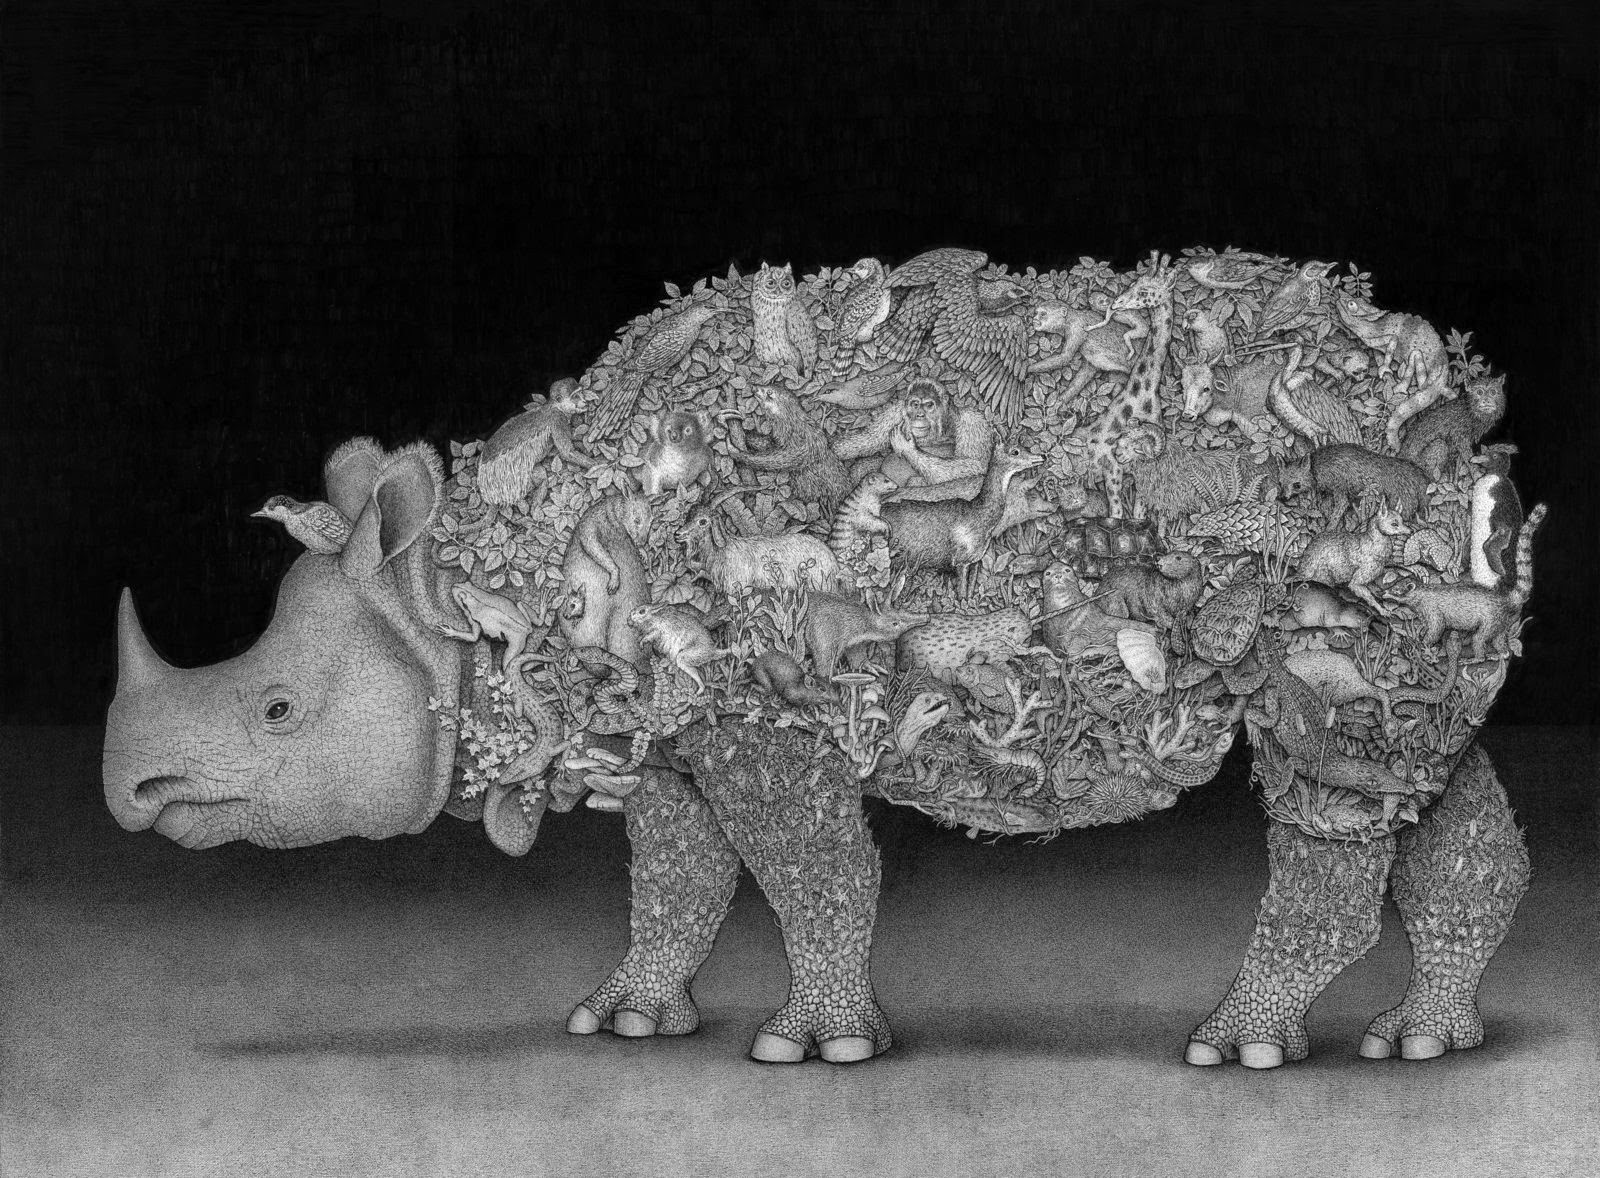 06-Rhinoceros-Ben-Tolman-Details-in-Large-Scale-Drawings-www-designstack-co